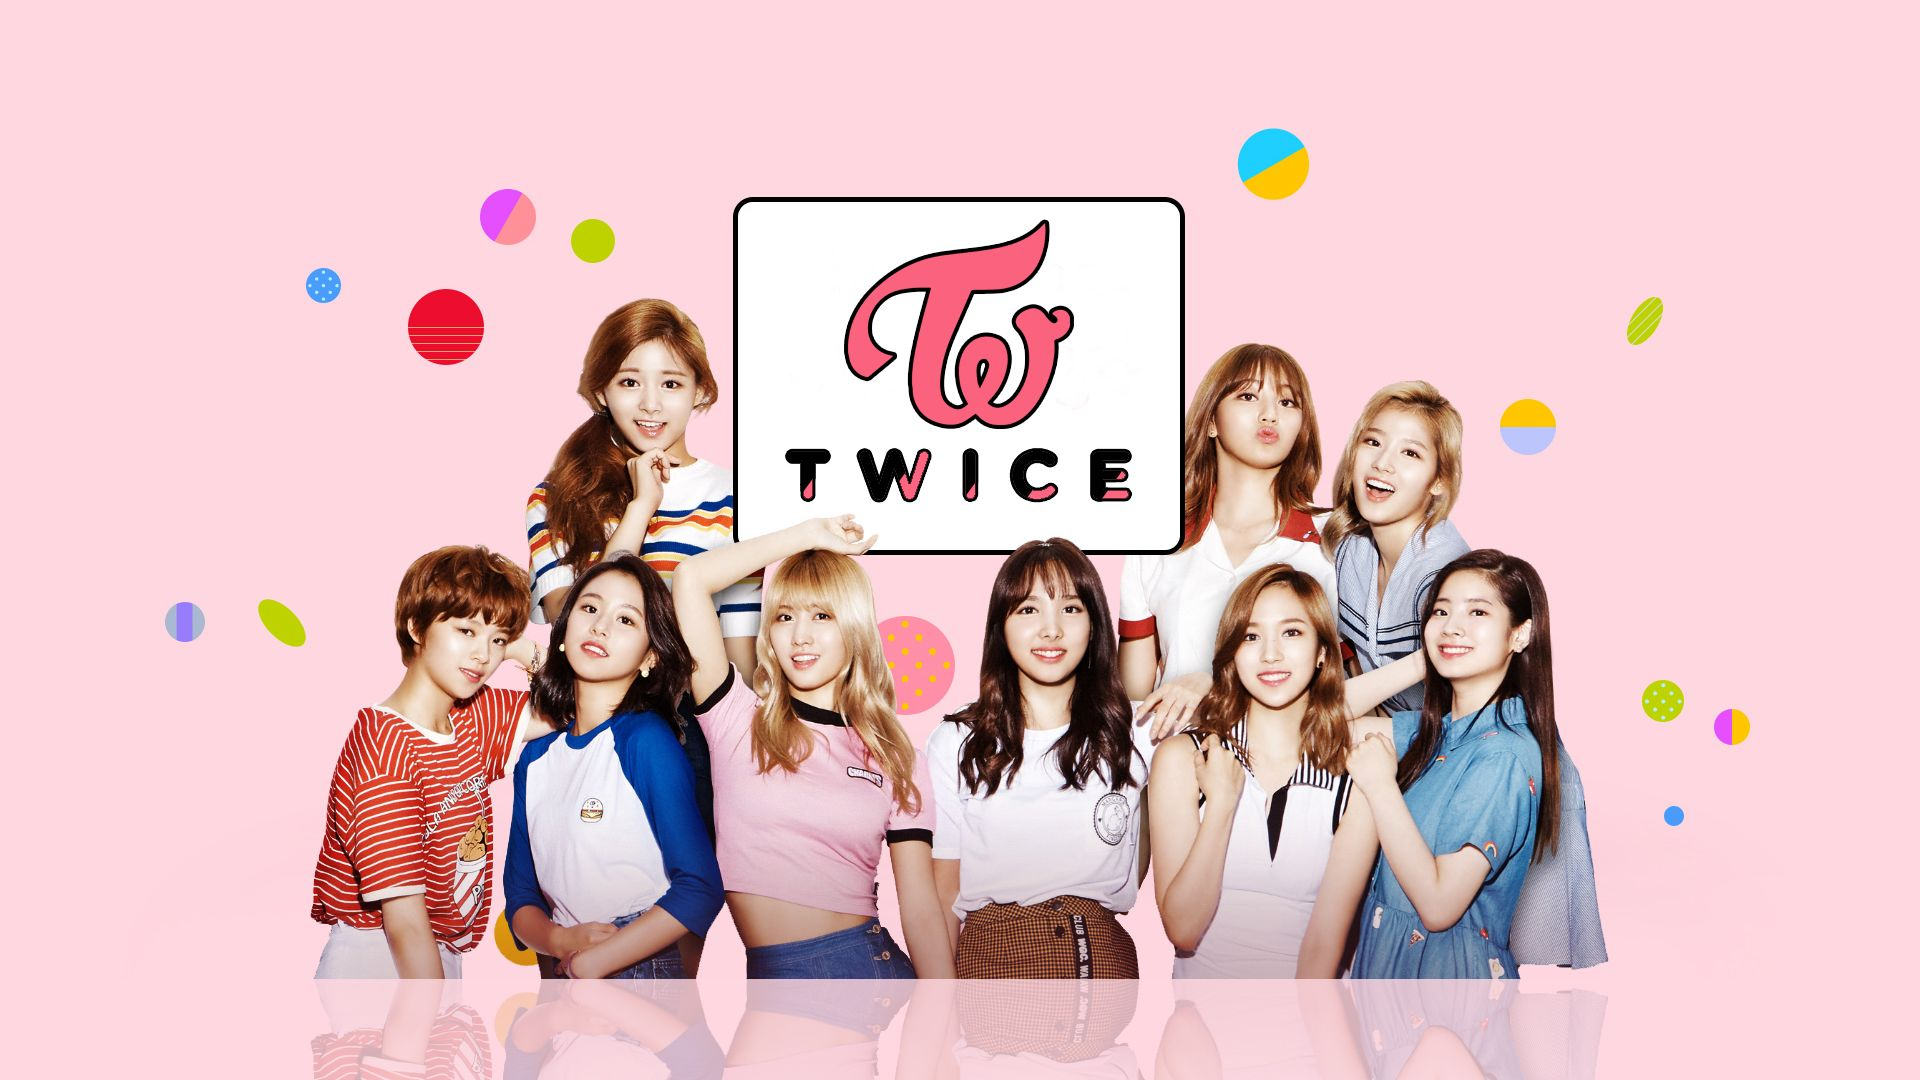 TWICE Wallpaper 1920 x 1080 Need iPhone 6S Plus